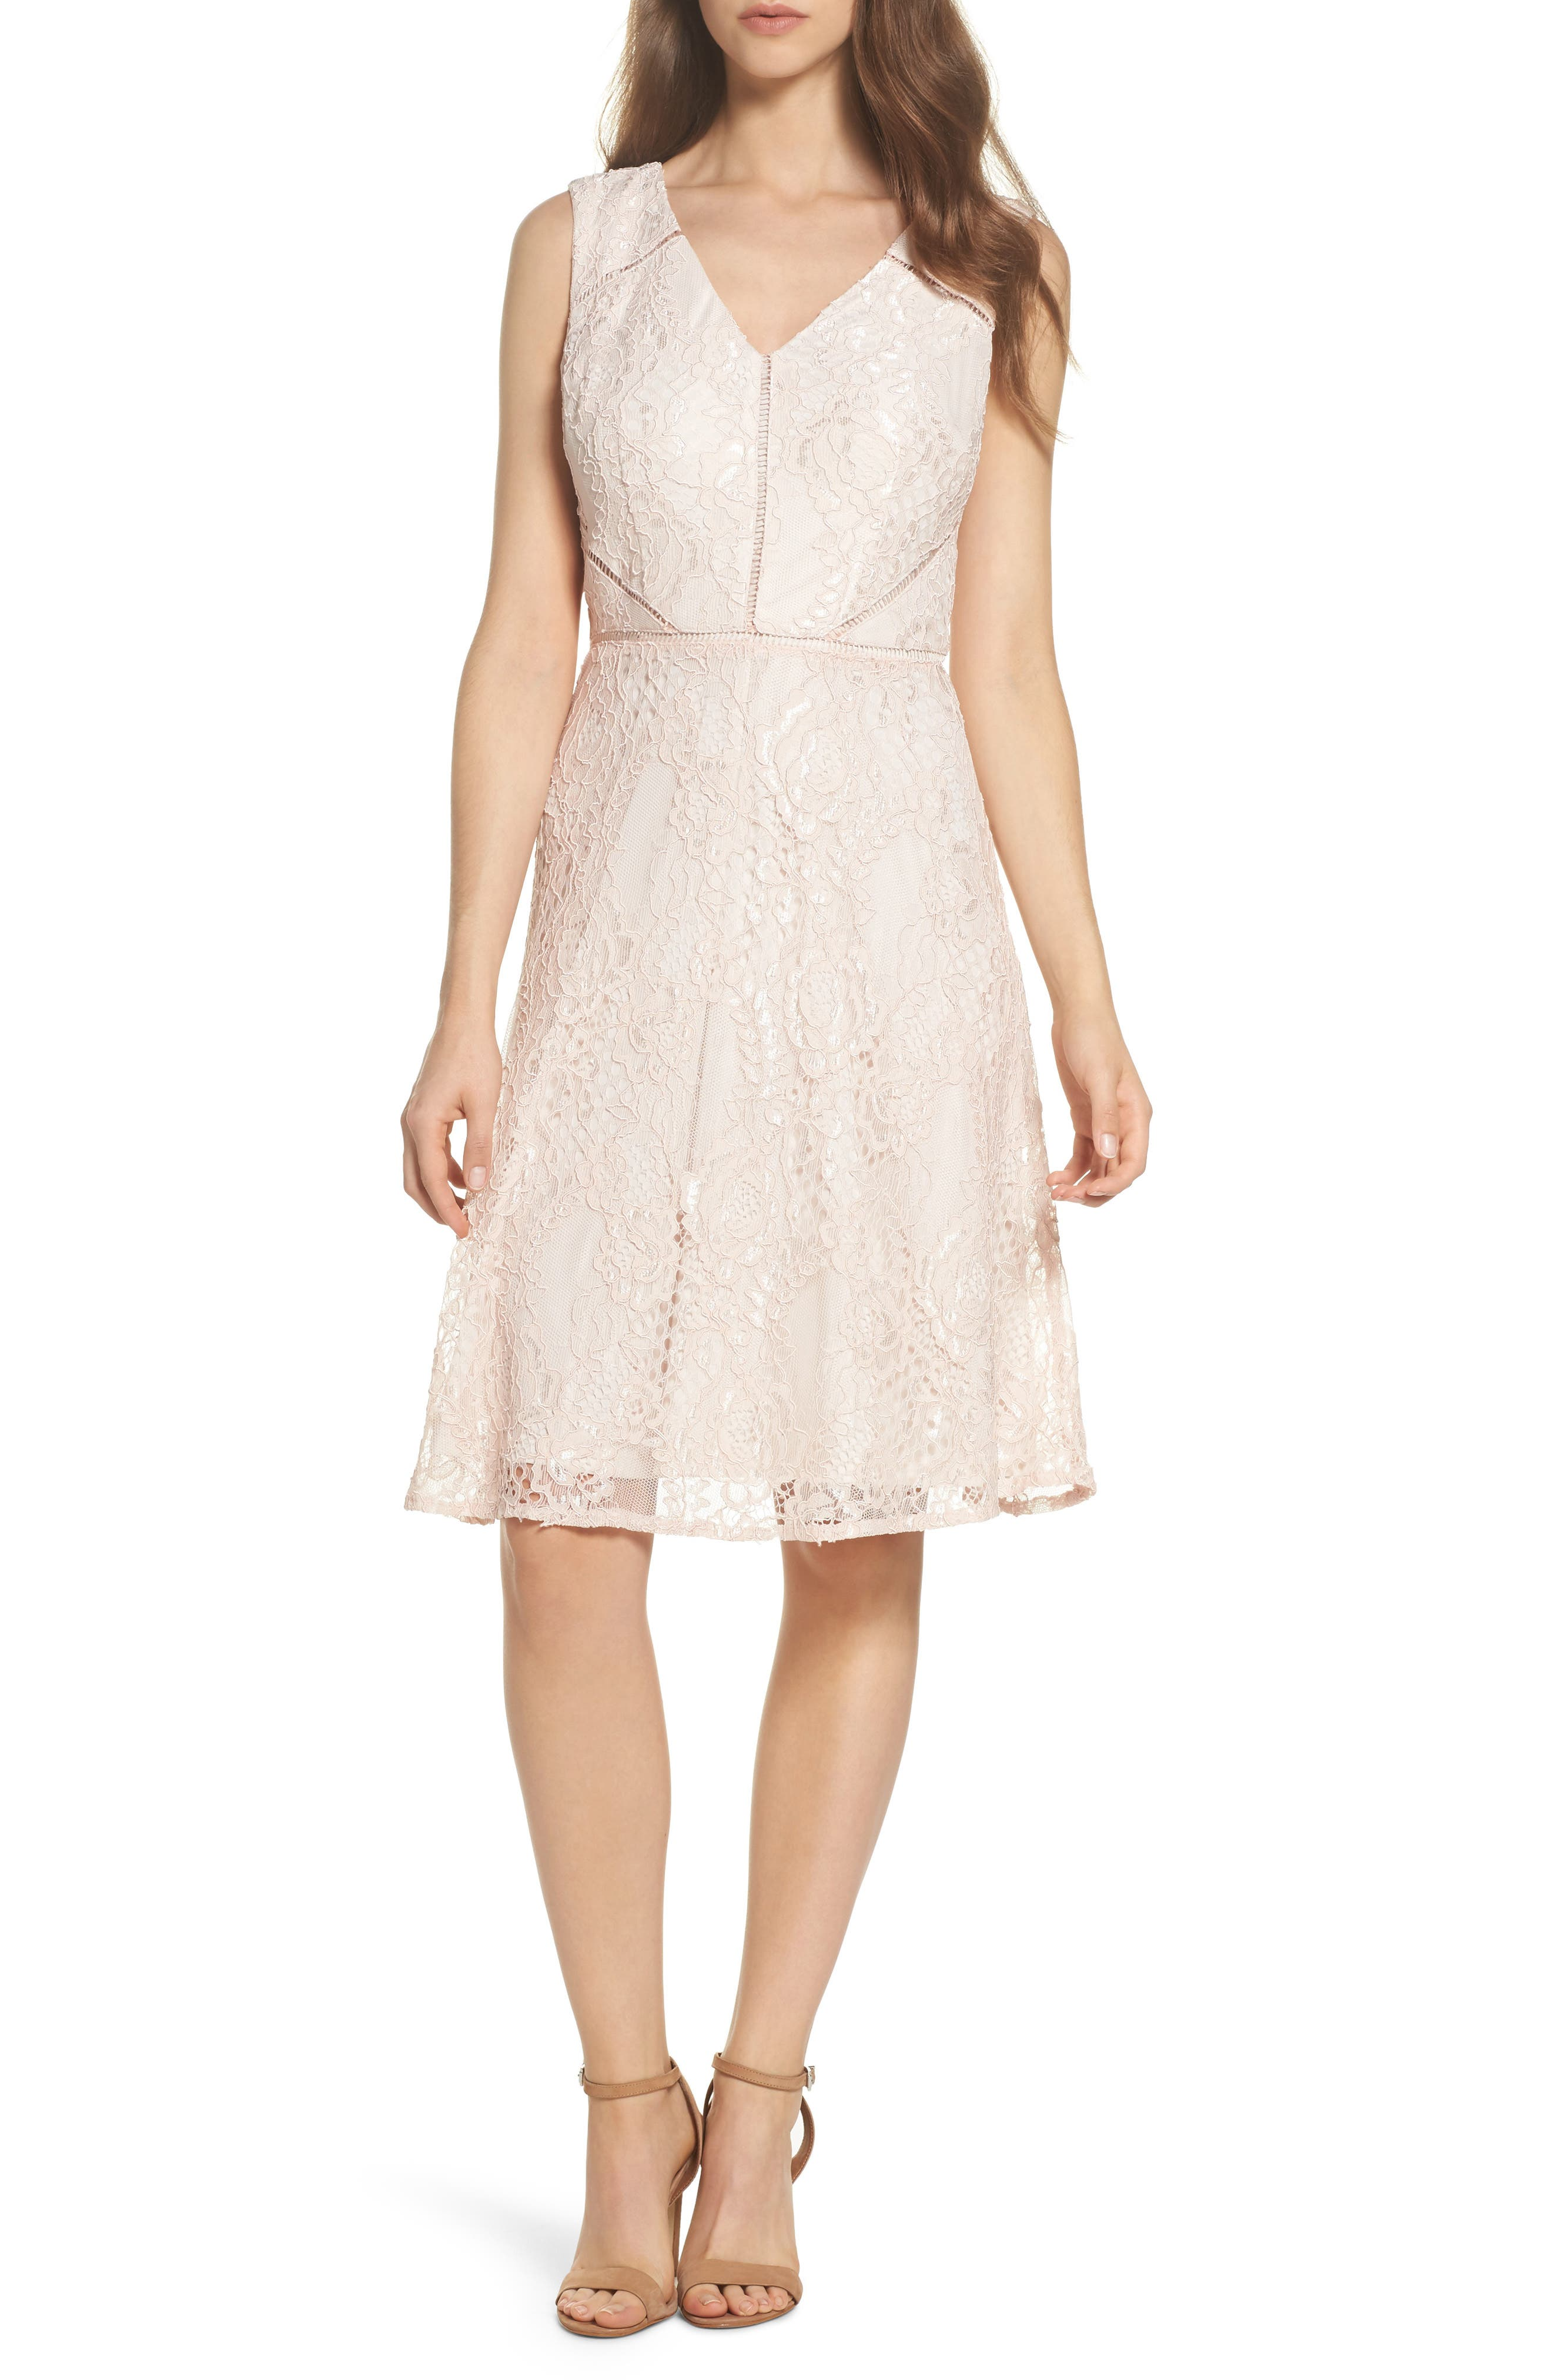 Main Image - Adrianna Papell Rose Lace Fit & Flare Dress